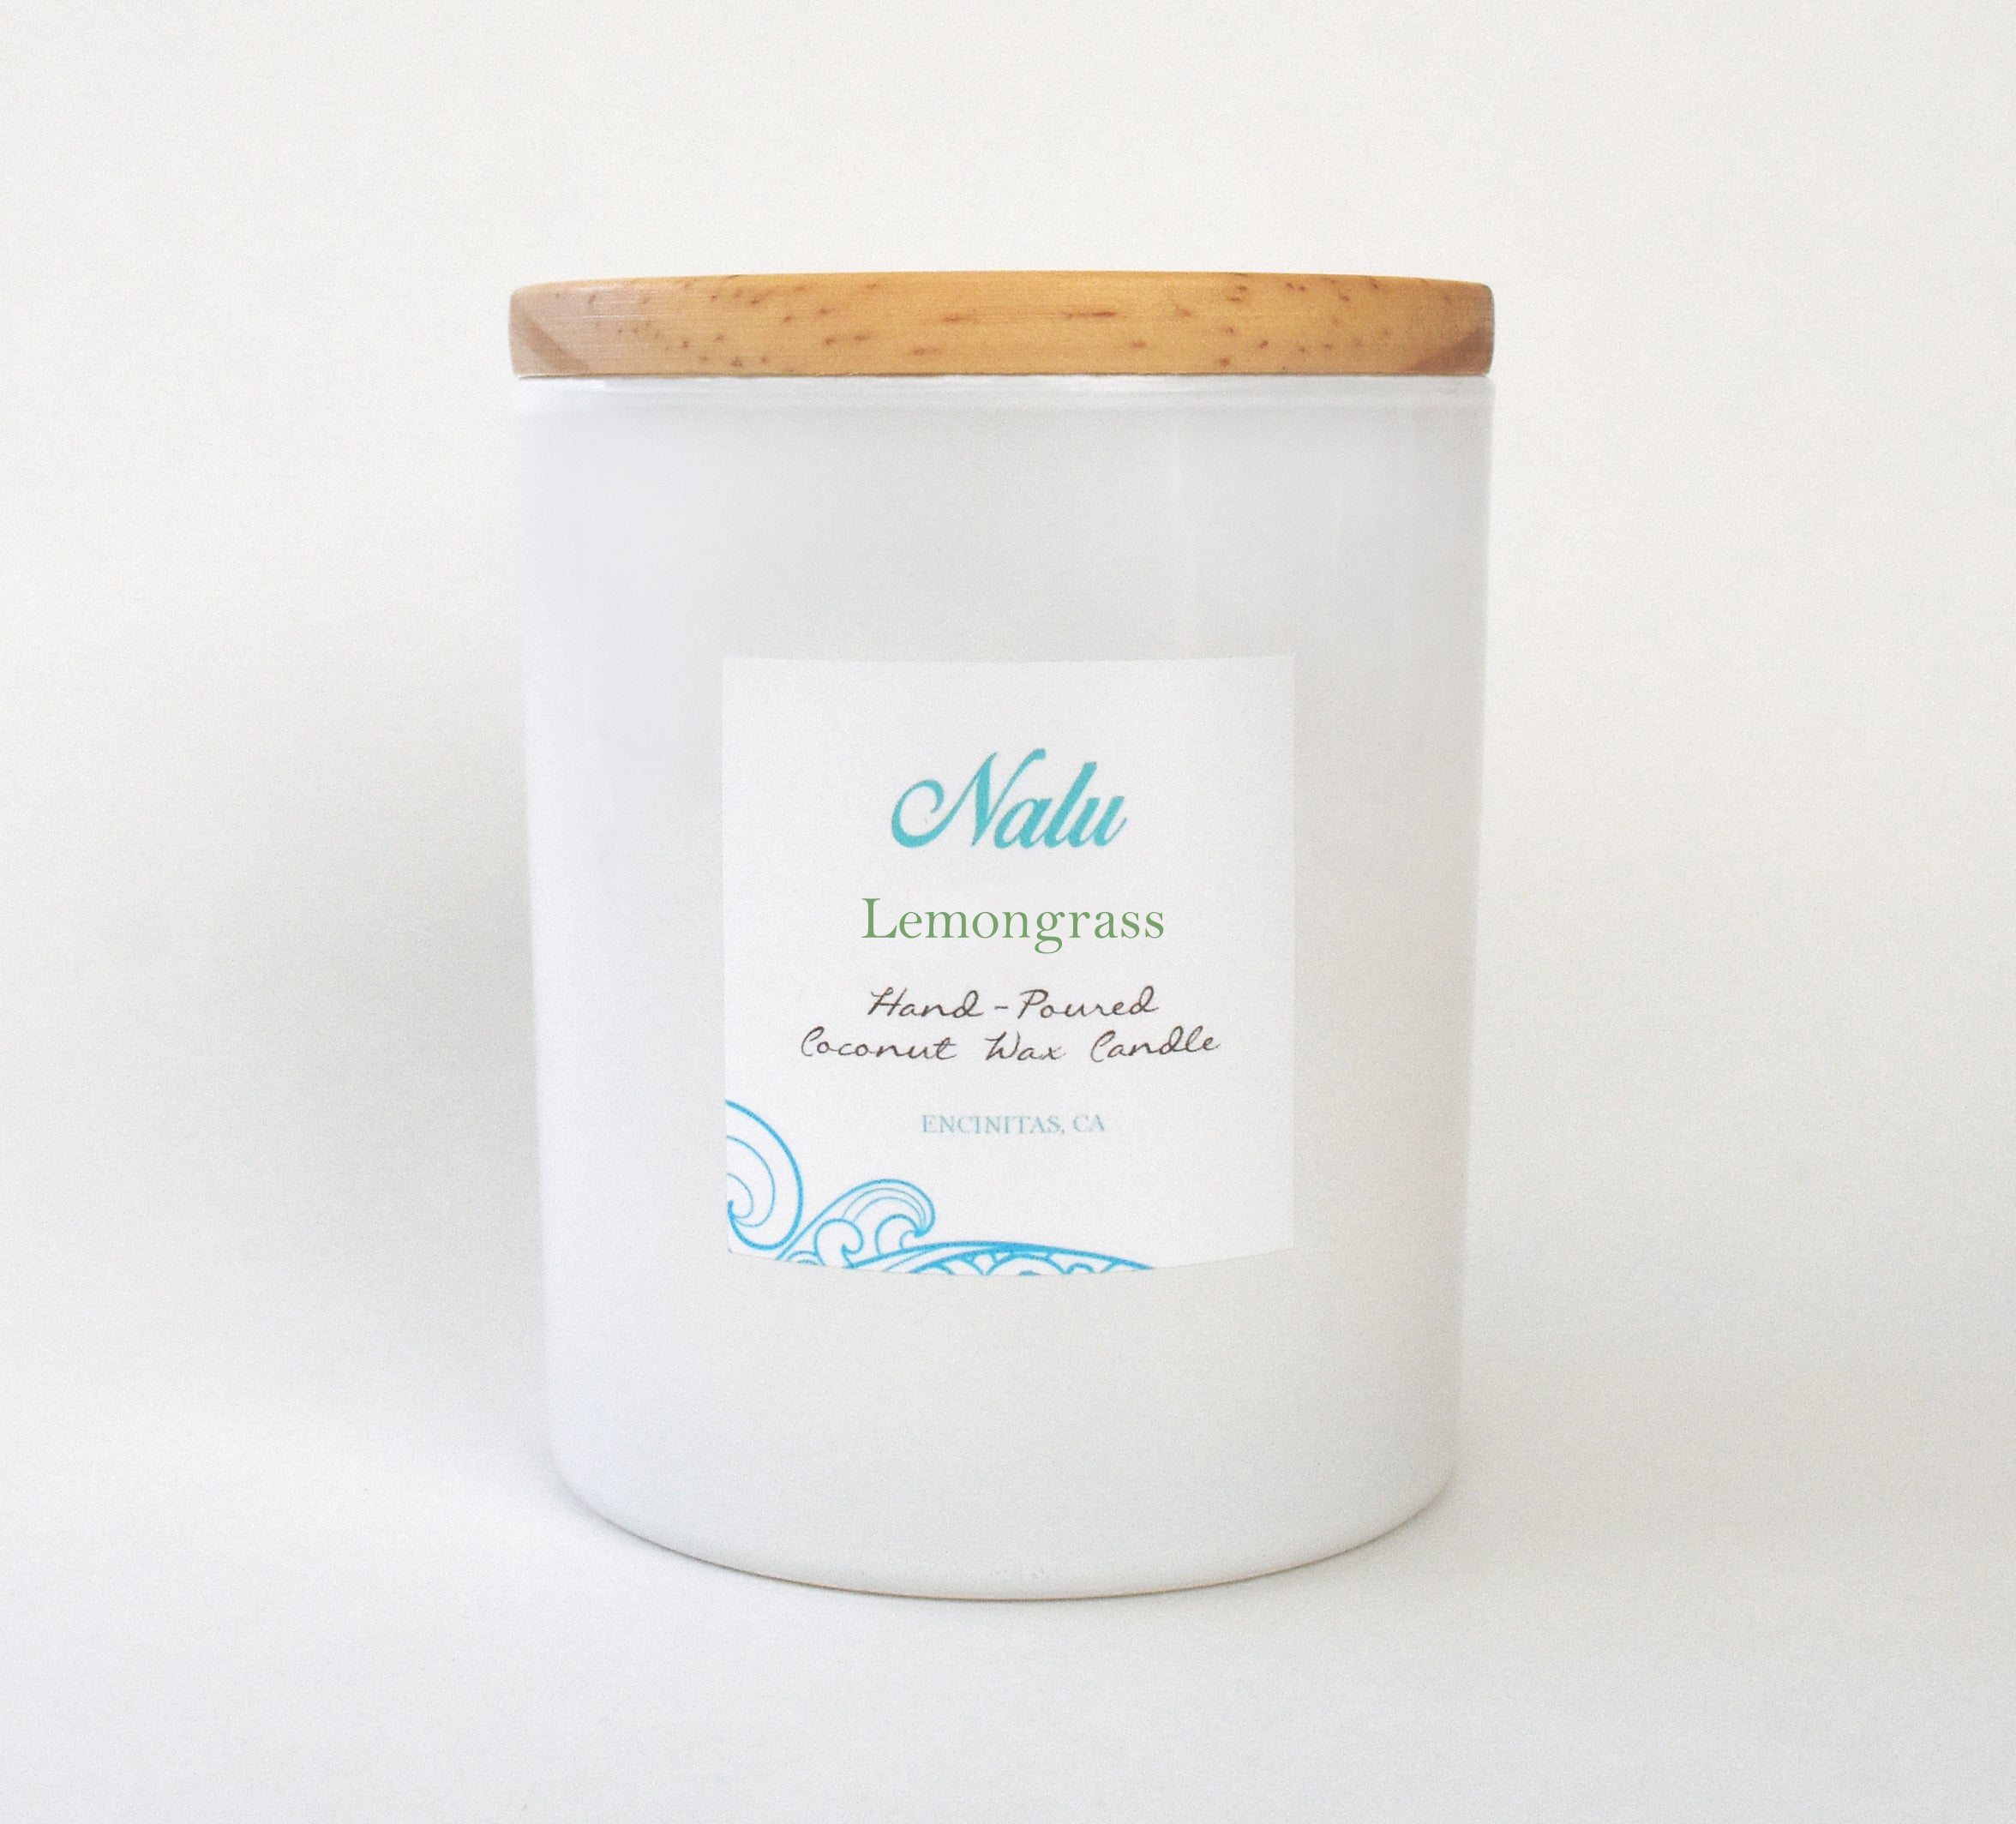 Lemongrass 13.5 oz. Candle